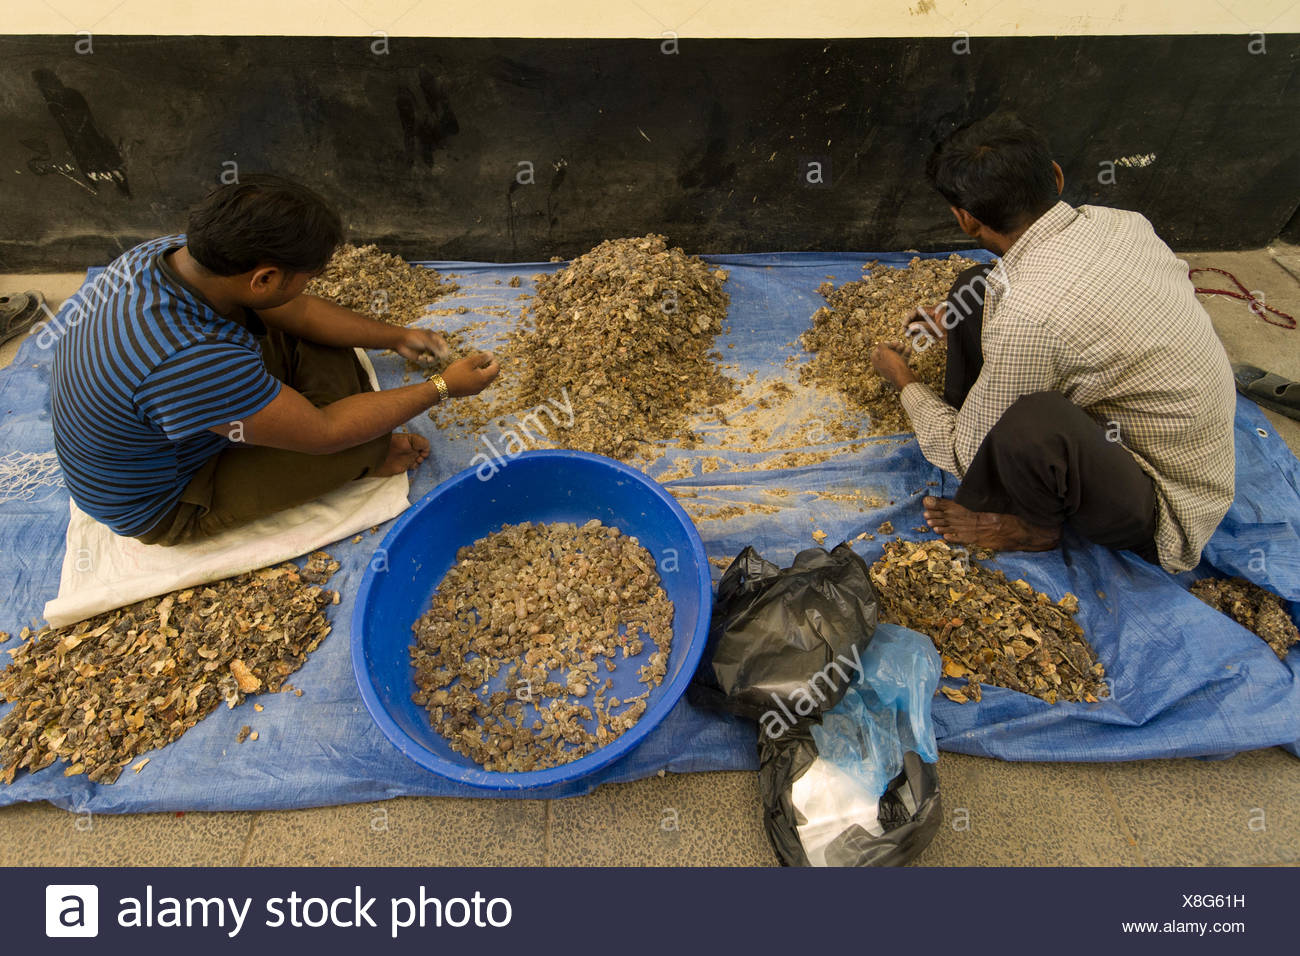 Indian workers separate and clean frankincense sap at a market in Salalah, Oman. - Stock Image